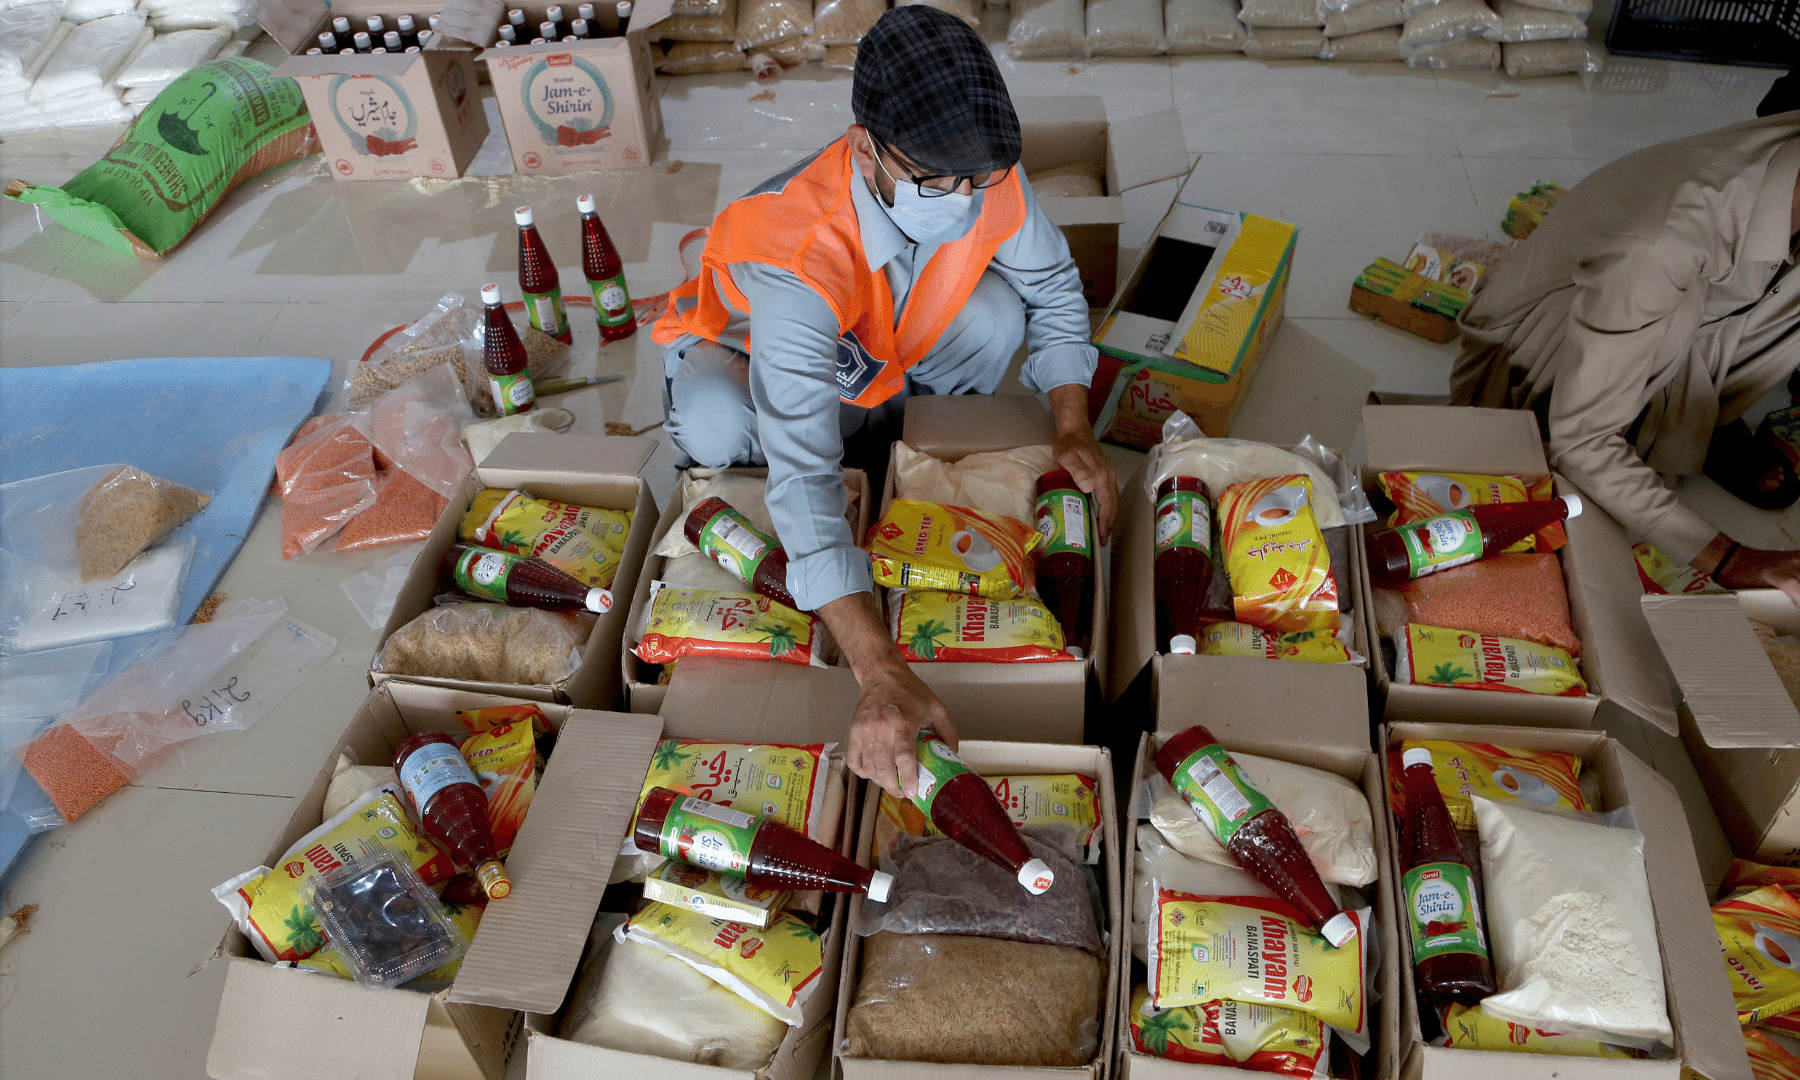 Workers from 'Alkhidmat Foundation Pakistan' prepare boxes of food and groceries to be distributed for free among needy people during Ramazan, in Peshawar. — AP